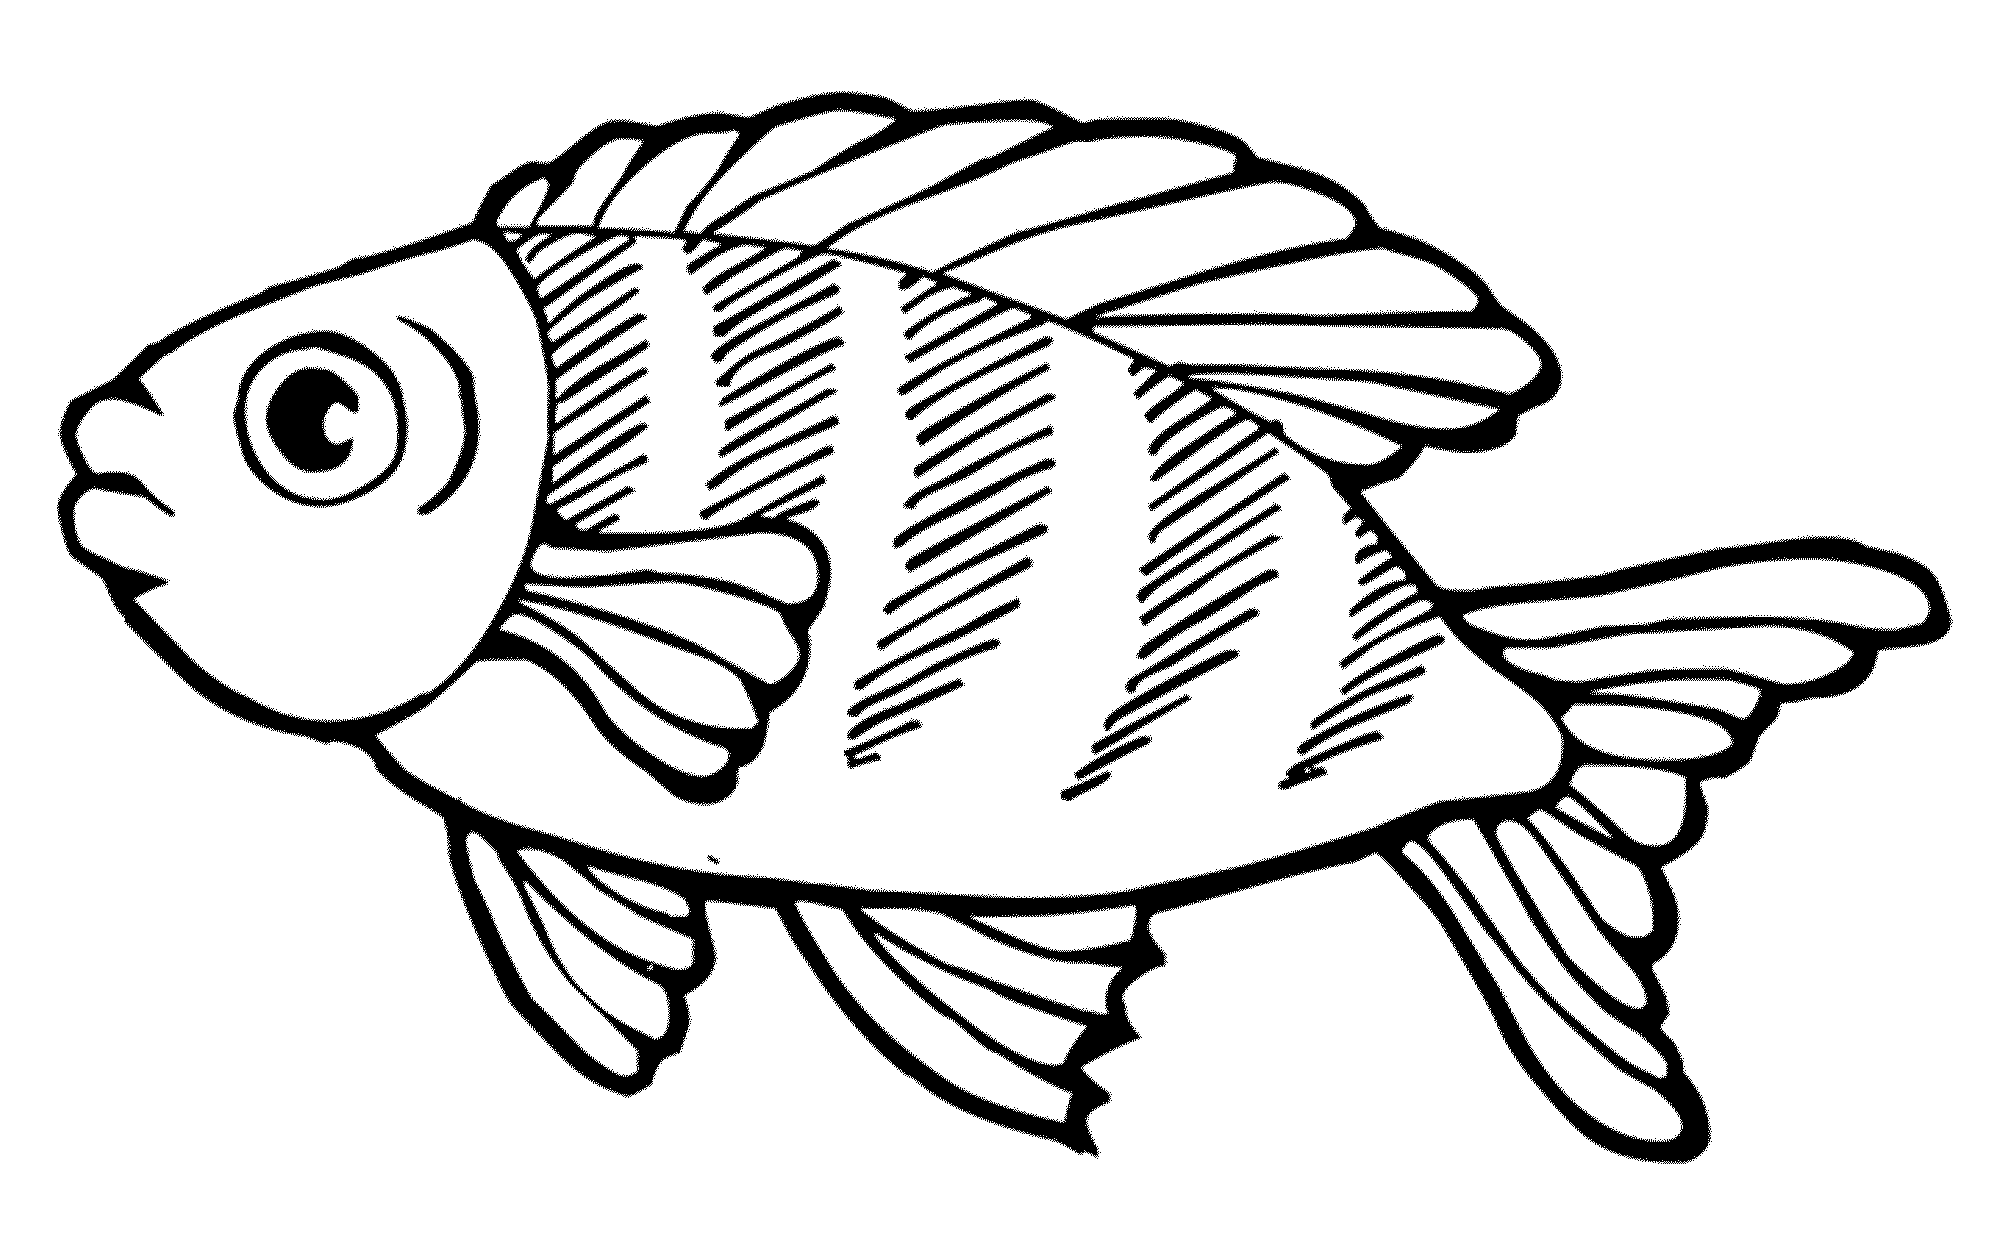 pictures of fish coloring pages print download cute and educative fish coloring pages pages fish coloring pictures of